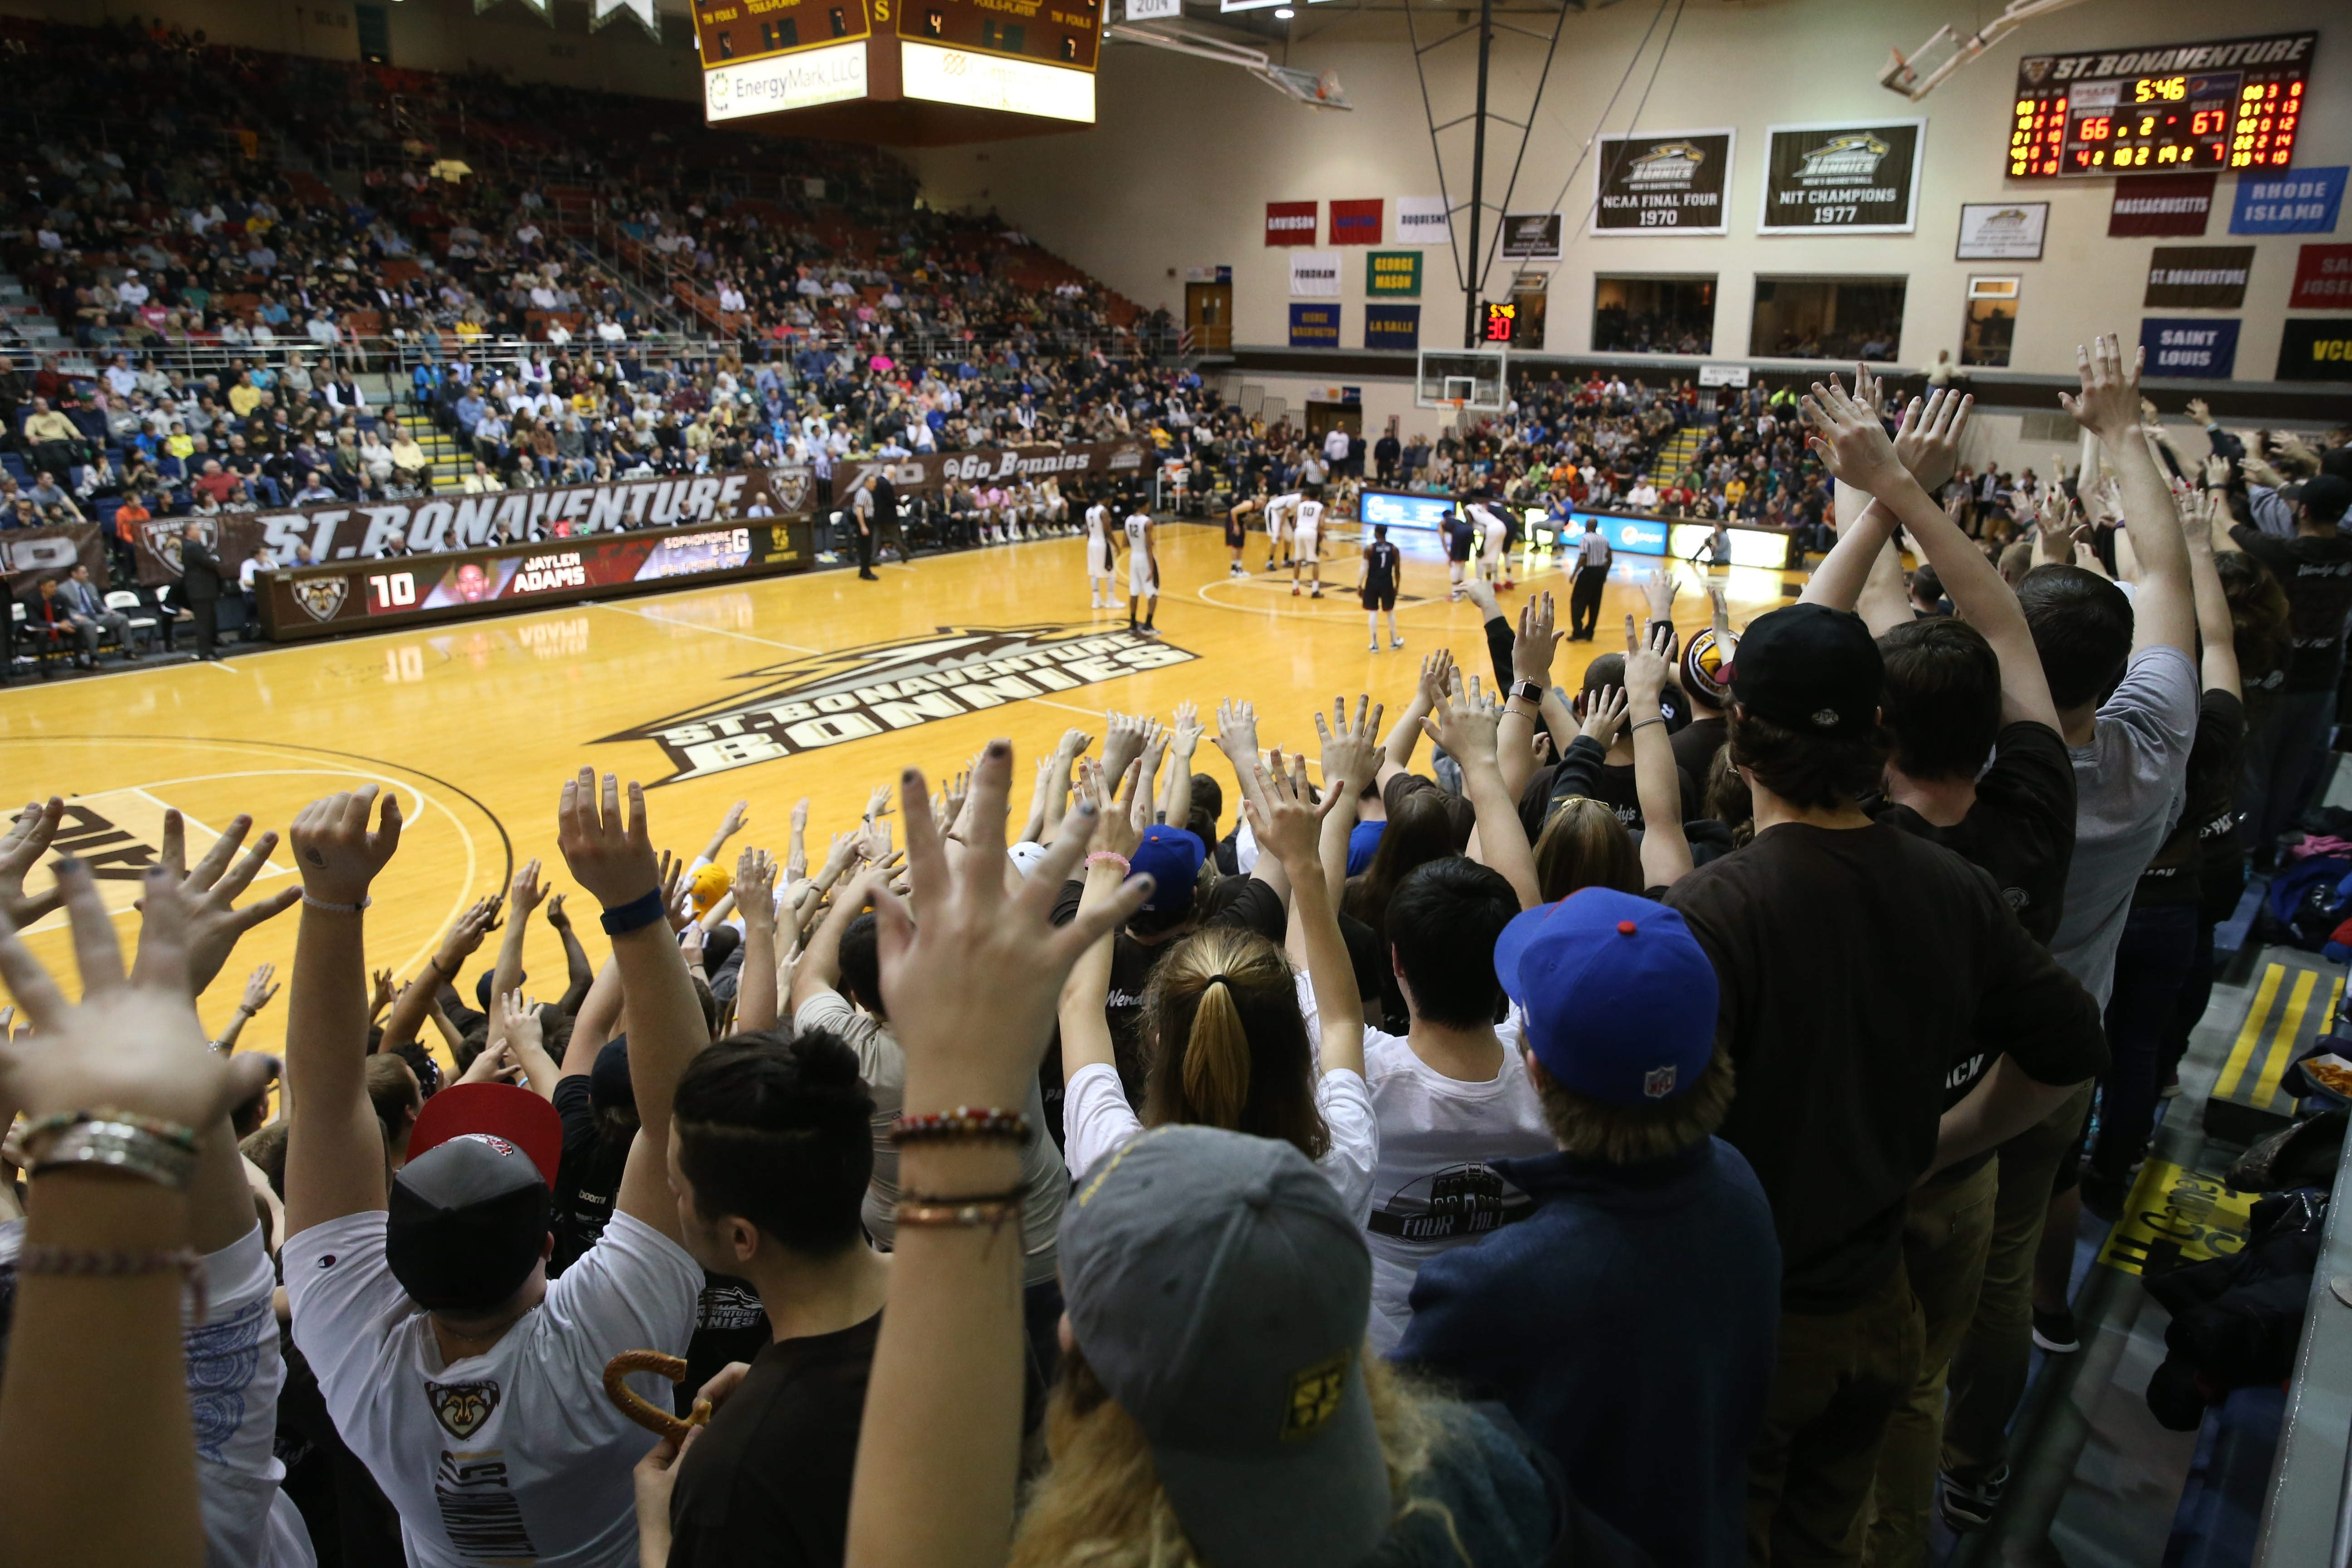 100 Things: Attend a St. Bonaventure basketball game